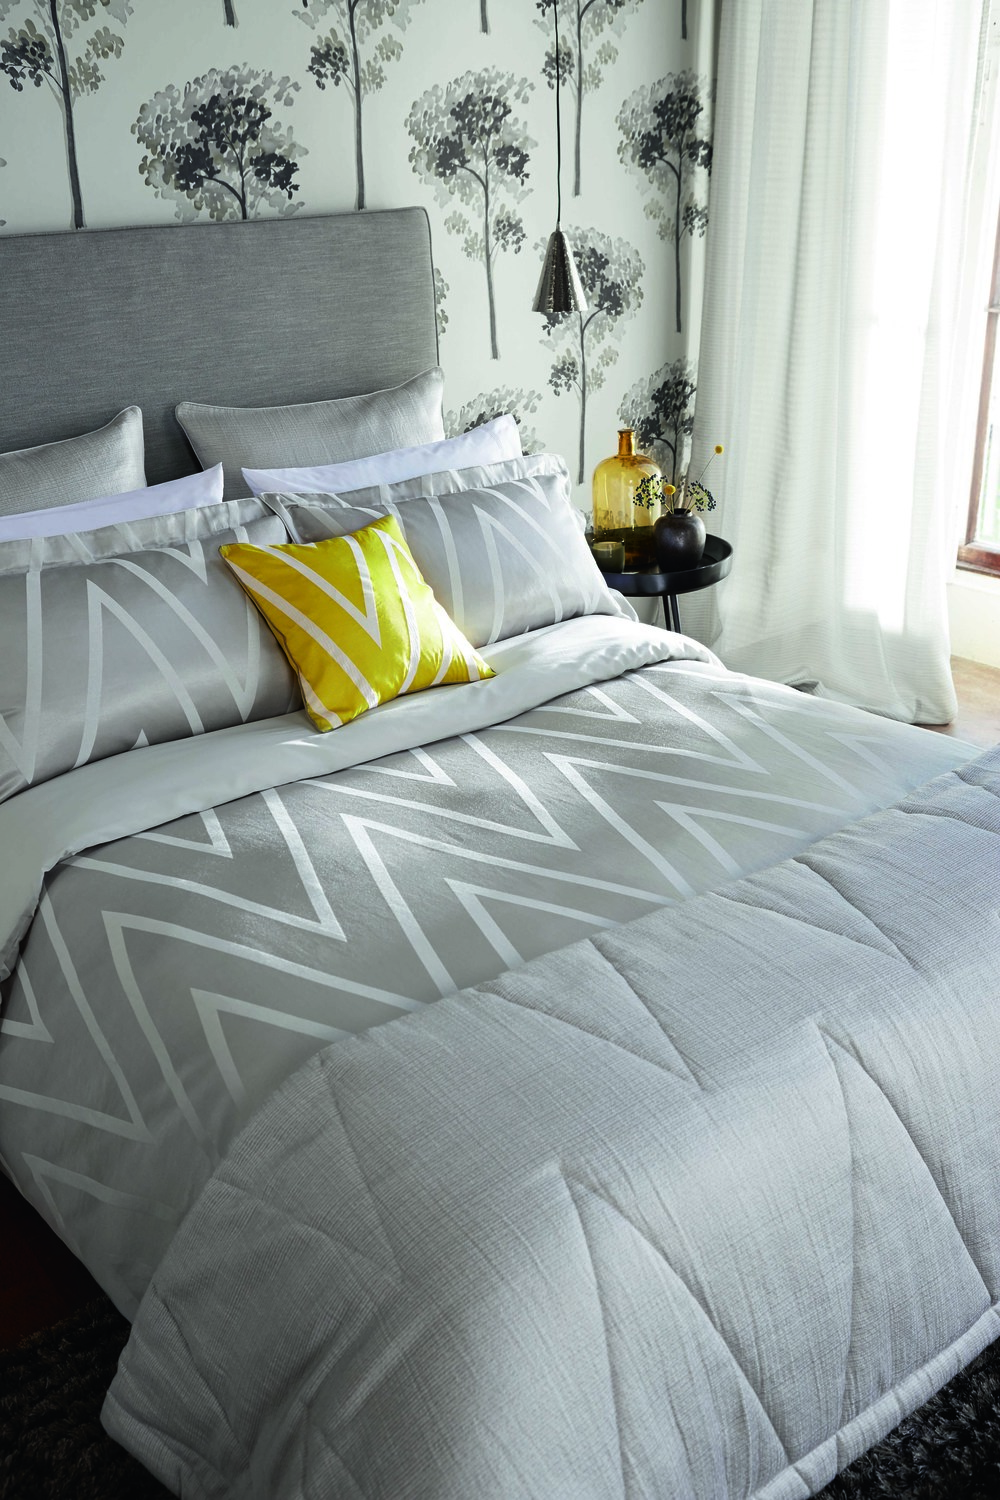 Bedlinen: Moriko Double Duvet Cover £120.00, Pillowcases: Moriko Square Pillowcase £30.00, Moriko Oxford Pillowcase £25.00, Cushion: £45.00, Throw: £175.00, Wallpaper: Katsura 110892 £59.00/rol